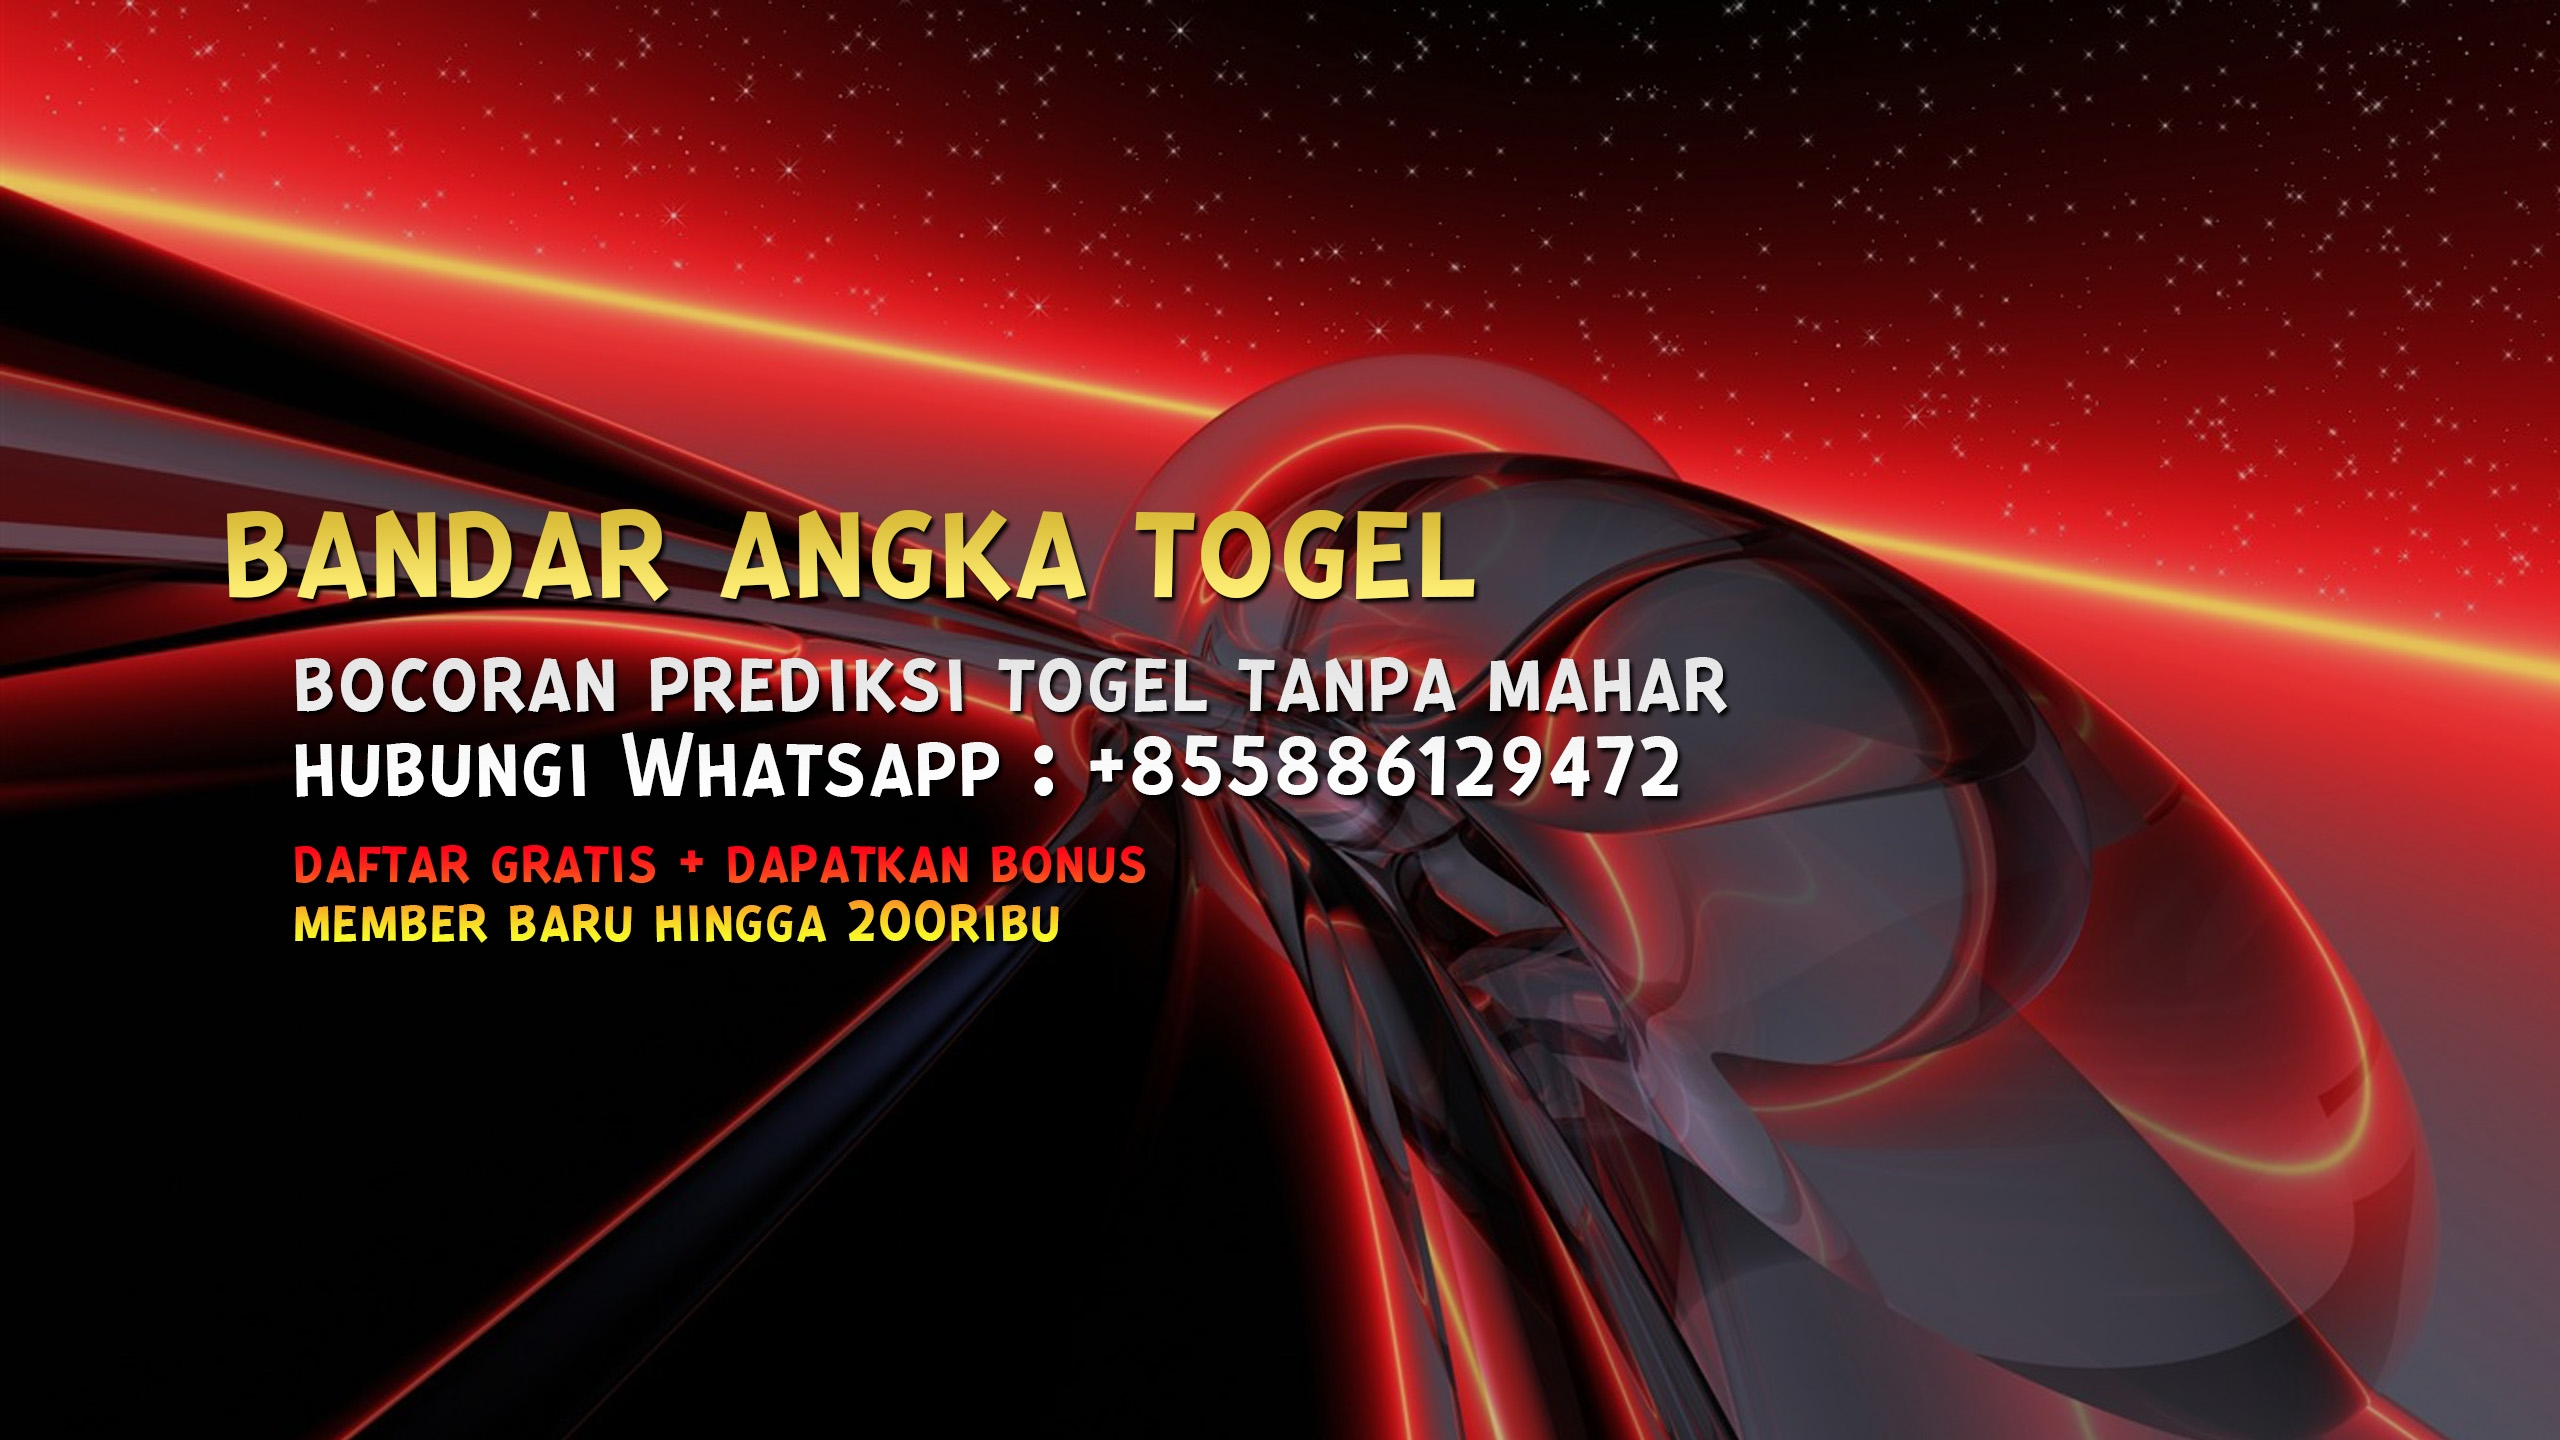 bandarangkatogel (@bandarangkatogel) Cover Image